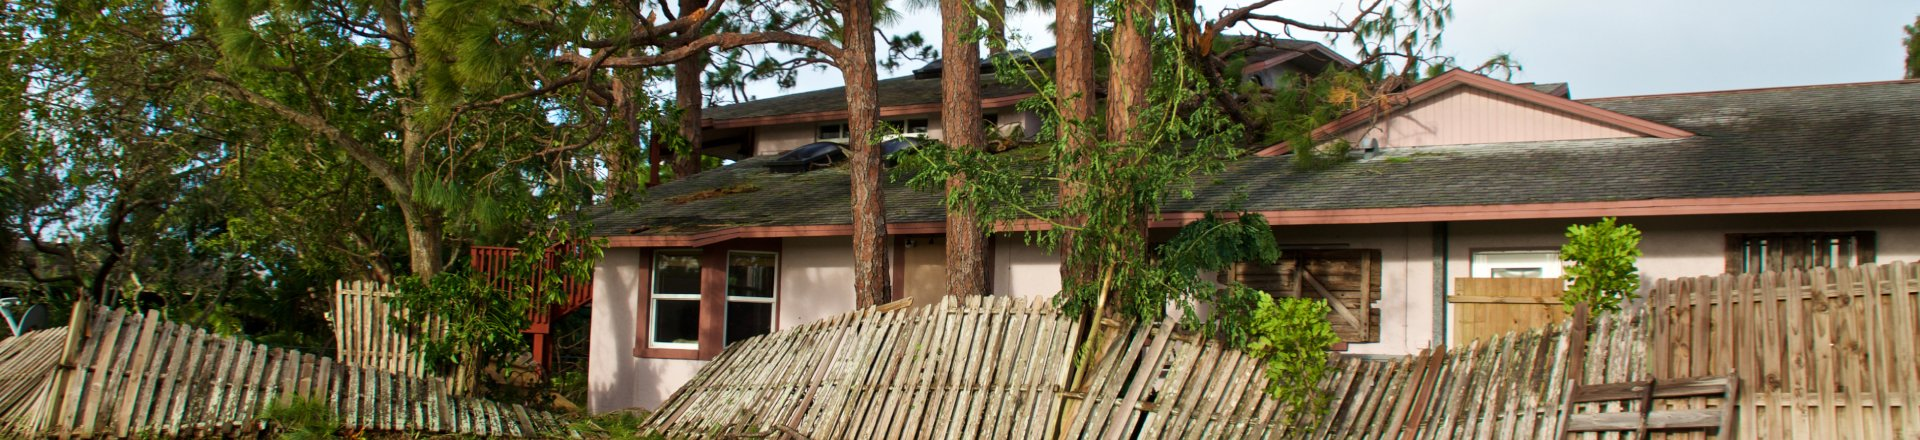 Tree has fallen on house, Hurricane Irma, Storm/Property Damage Insurance Claims Lawyer Serving Key West